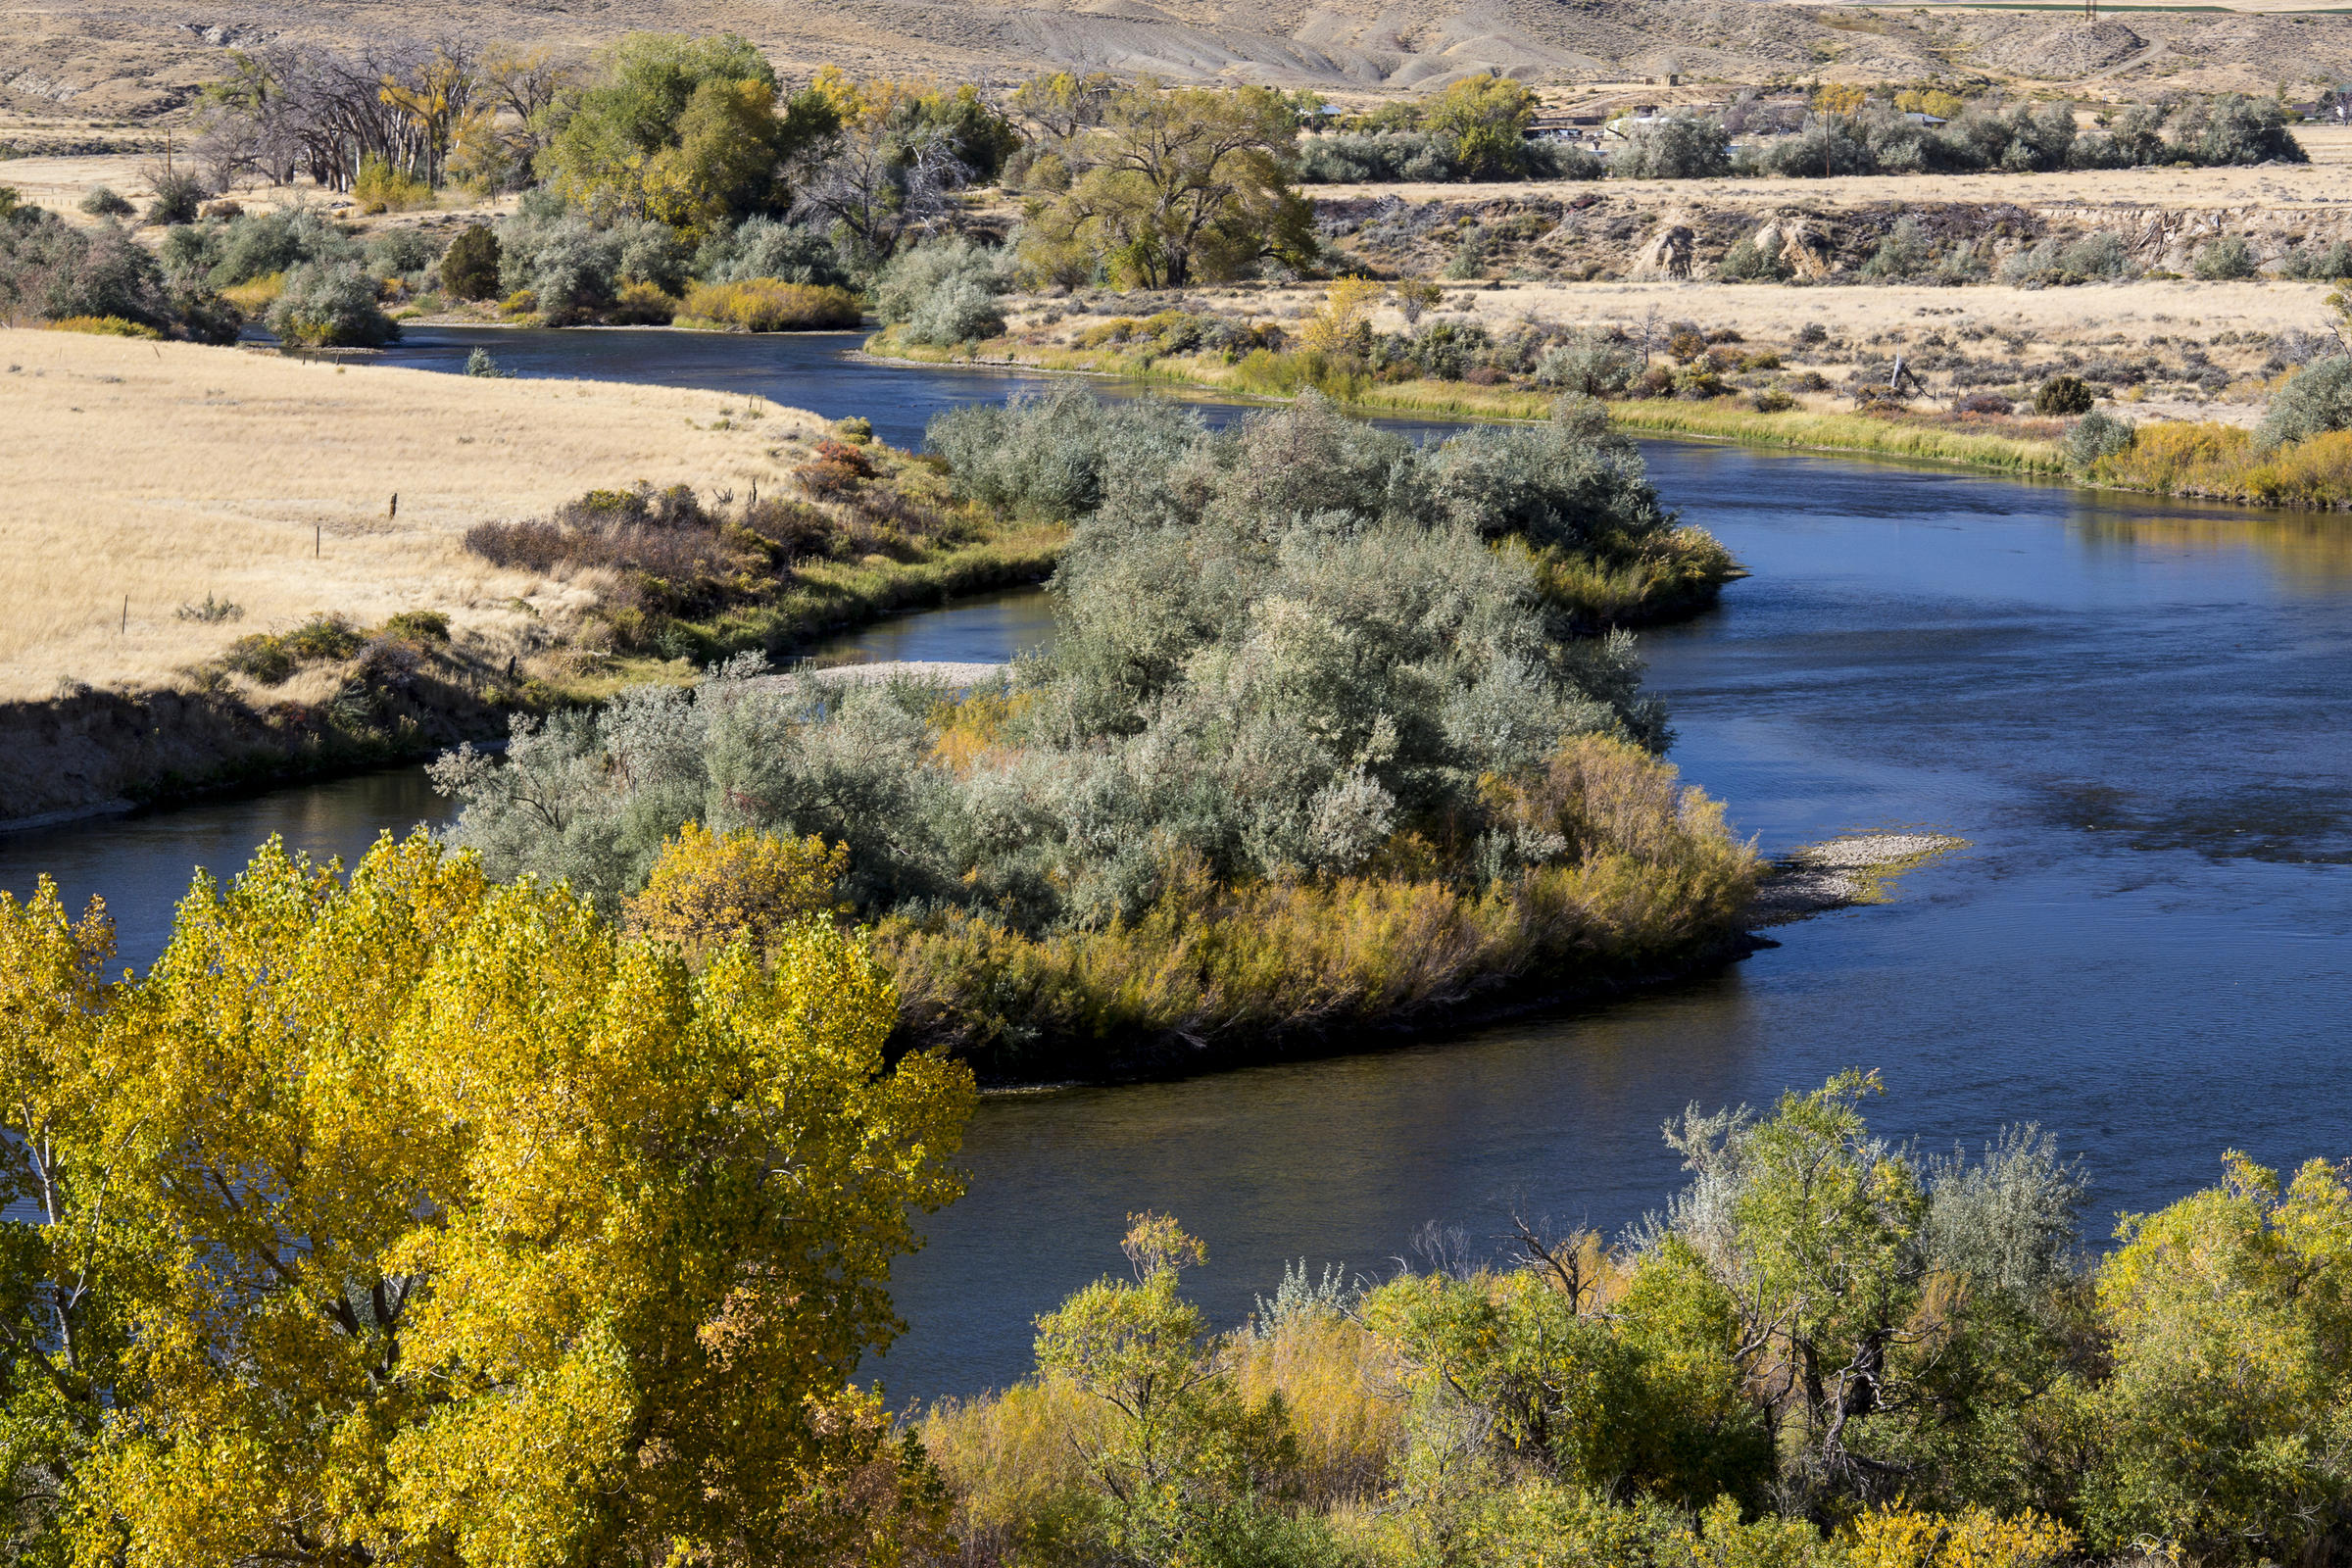 blm proposes more commercial fishing permits on north platte river